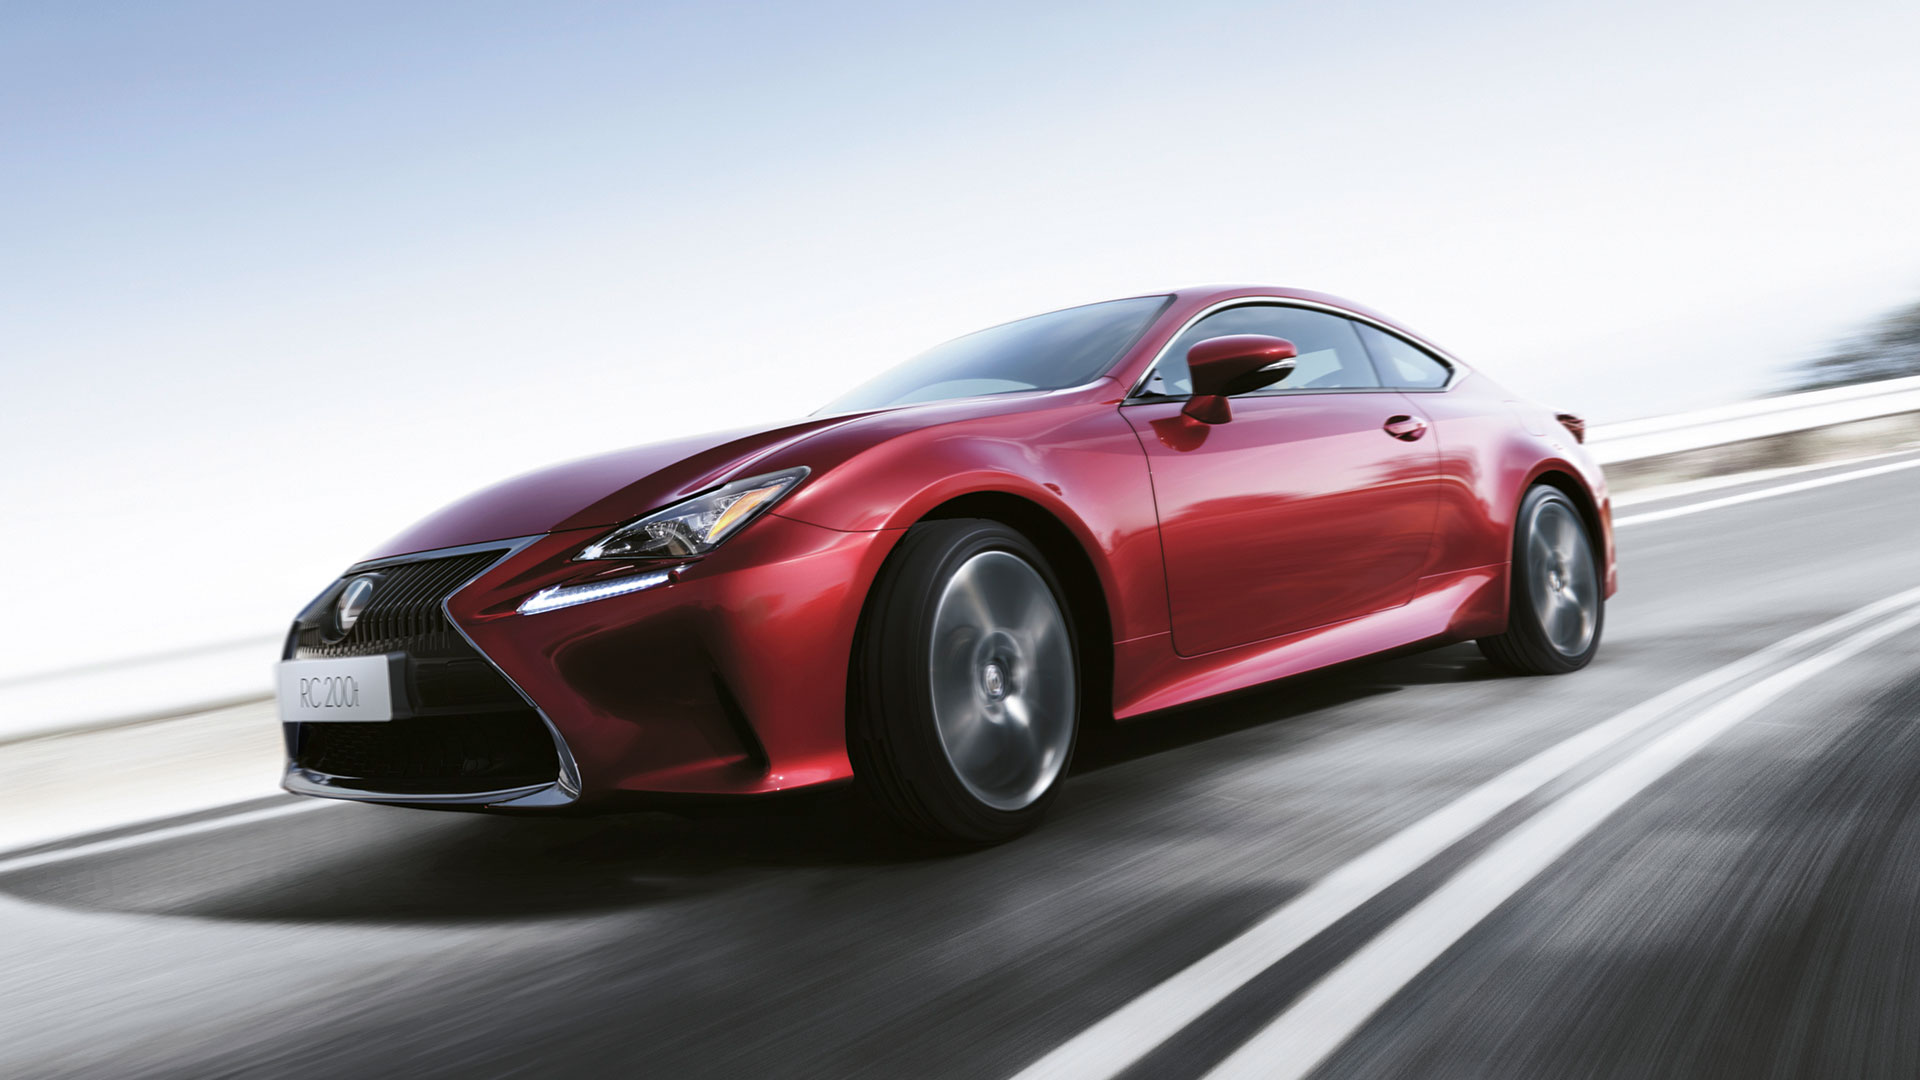 2017 lexus rc 200t next steps personalise